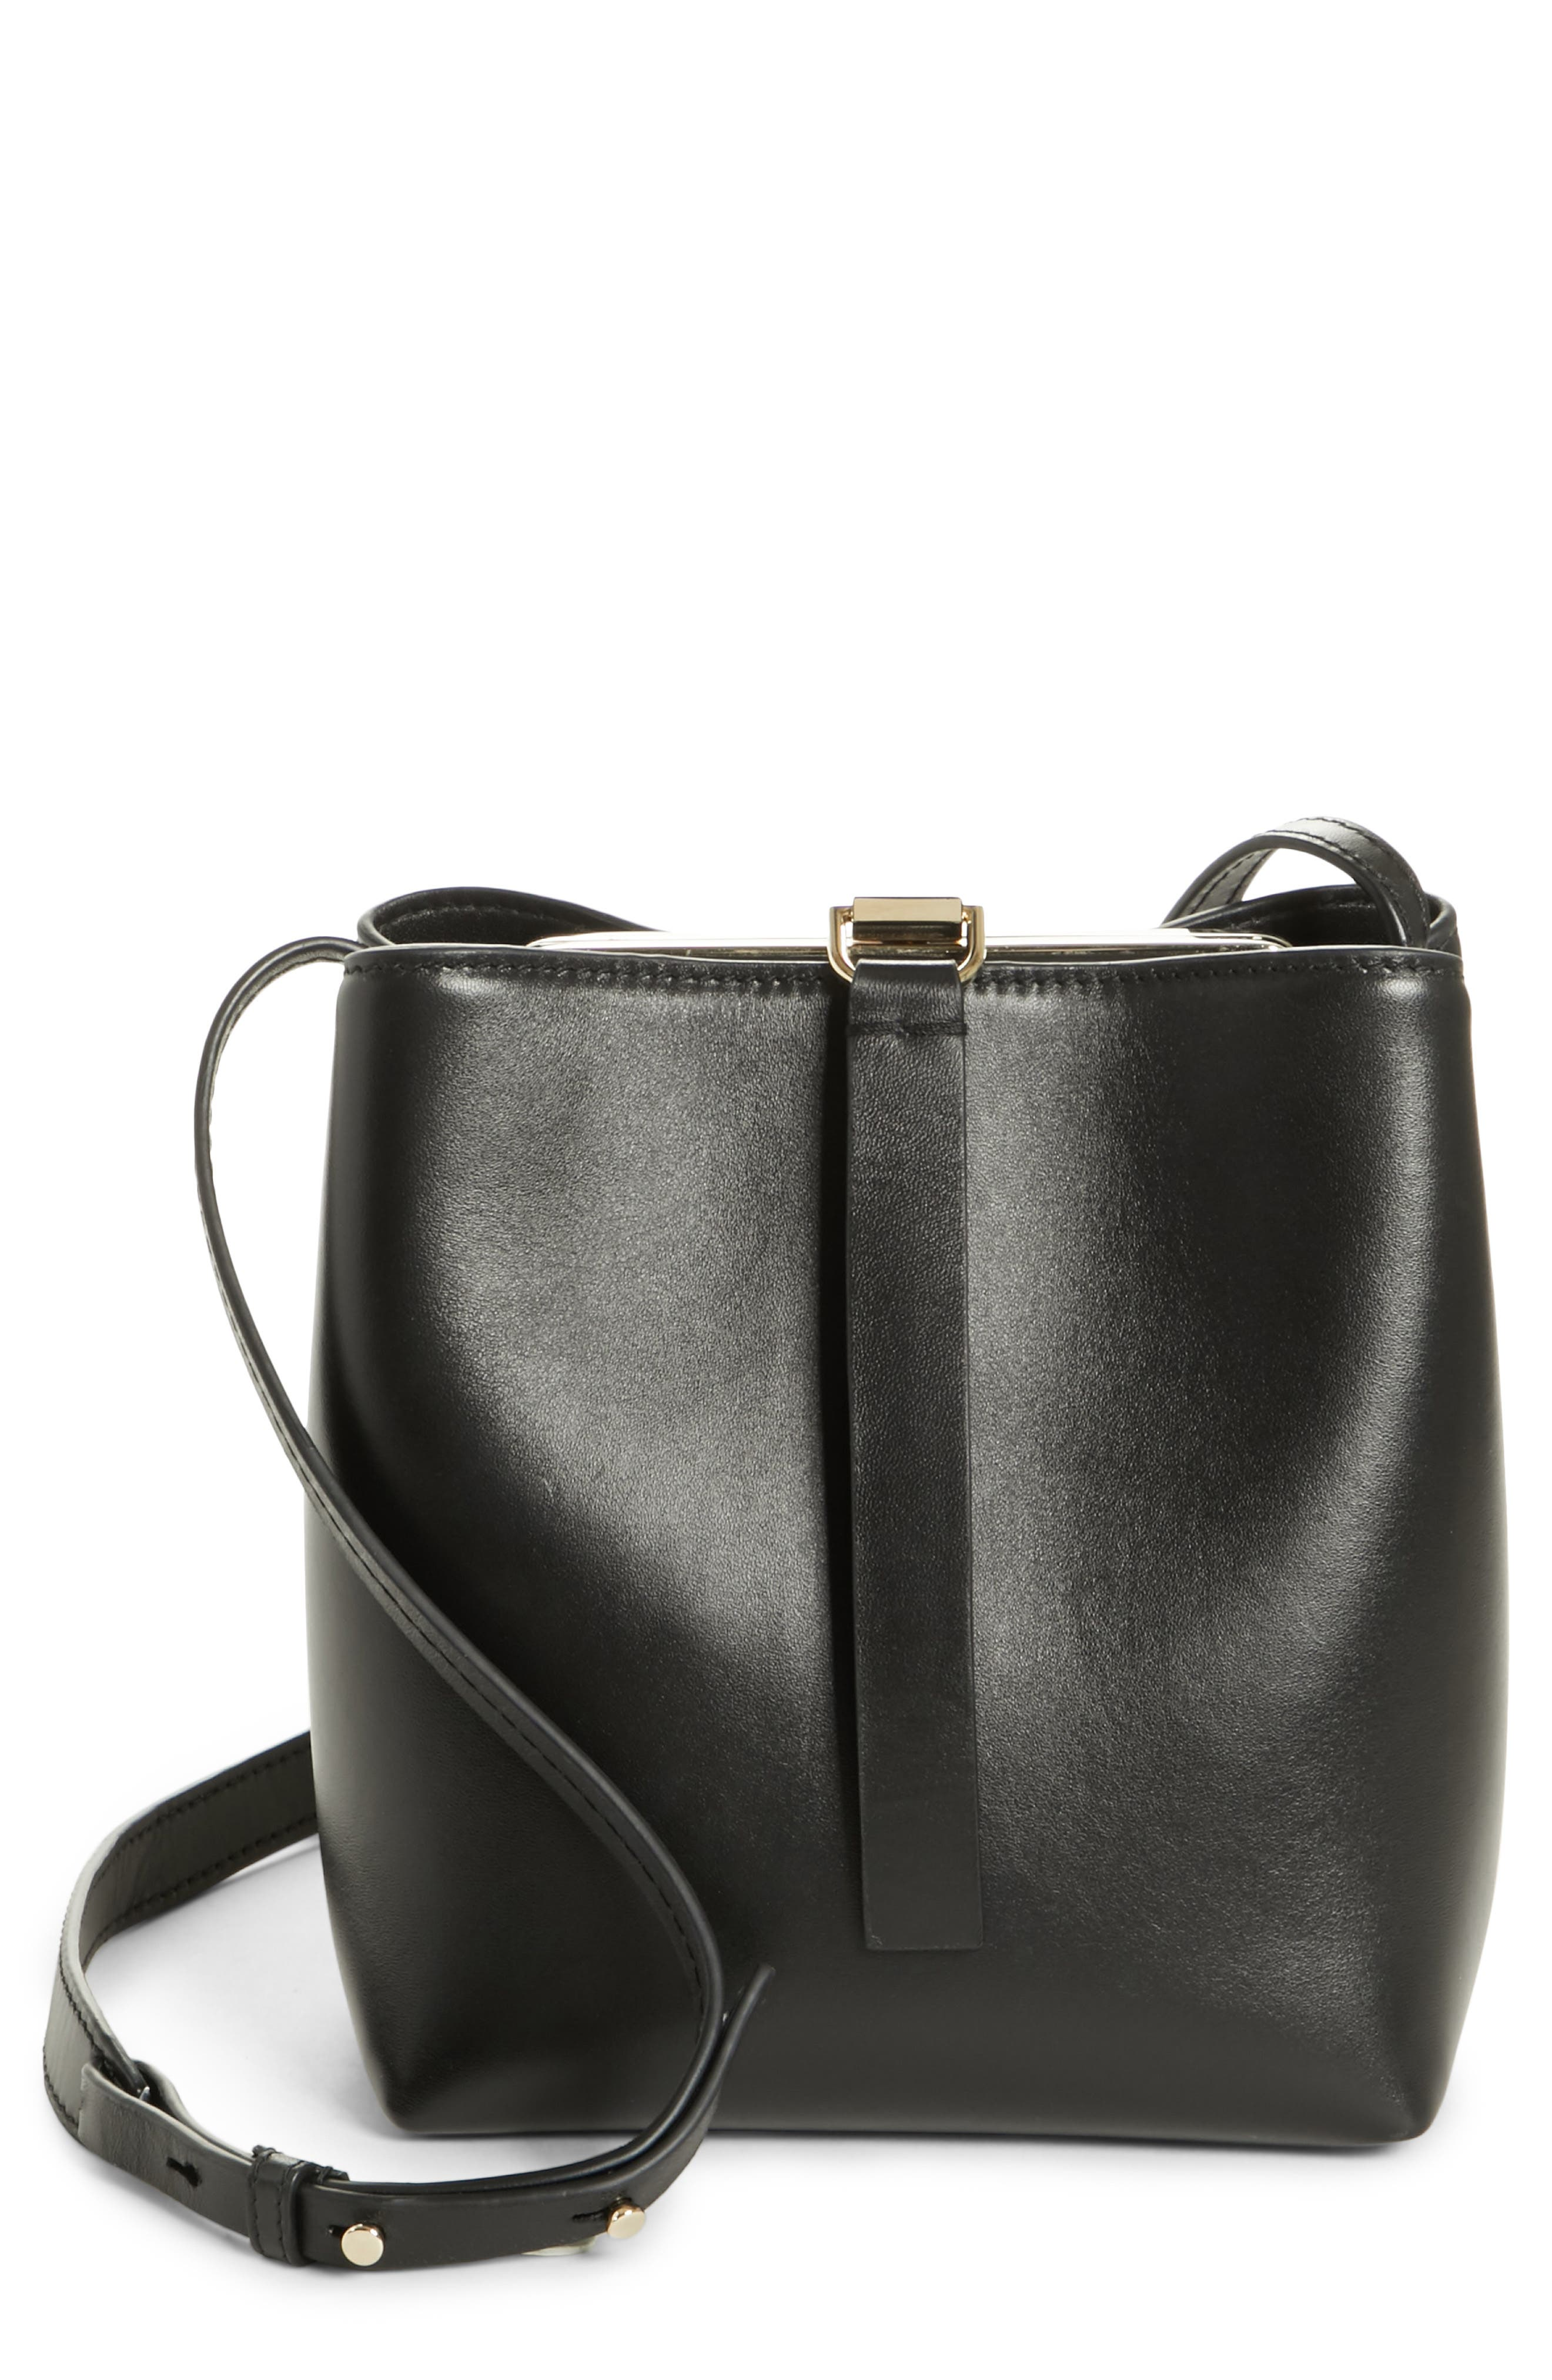 PROENZA SCHOULER, Frame Leather Crossbody Bag, Main thumbnail 1, color, BLACK/ BLACK